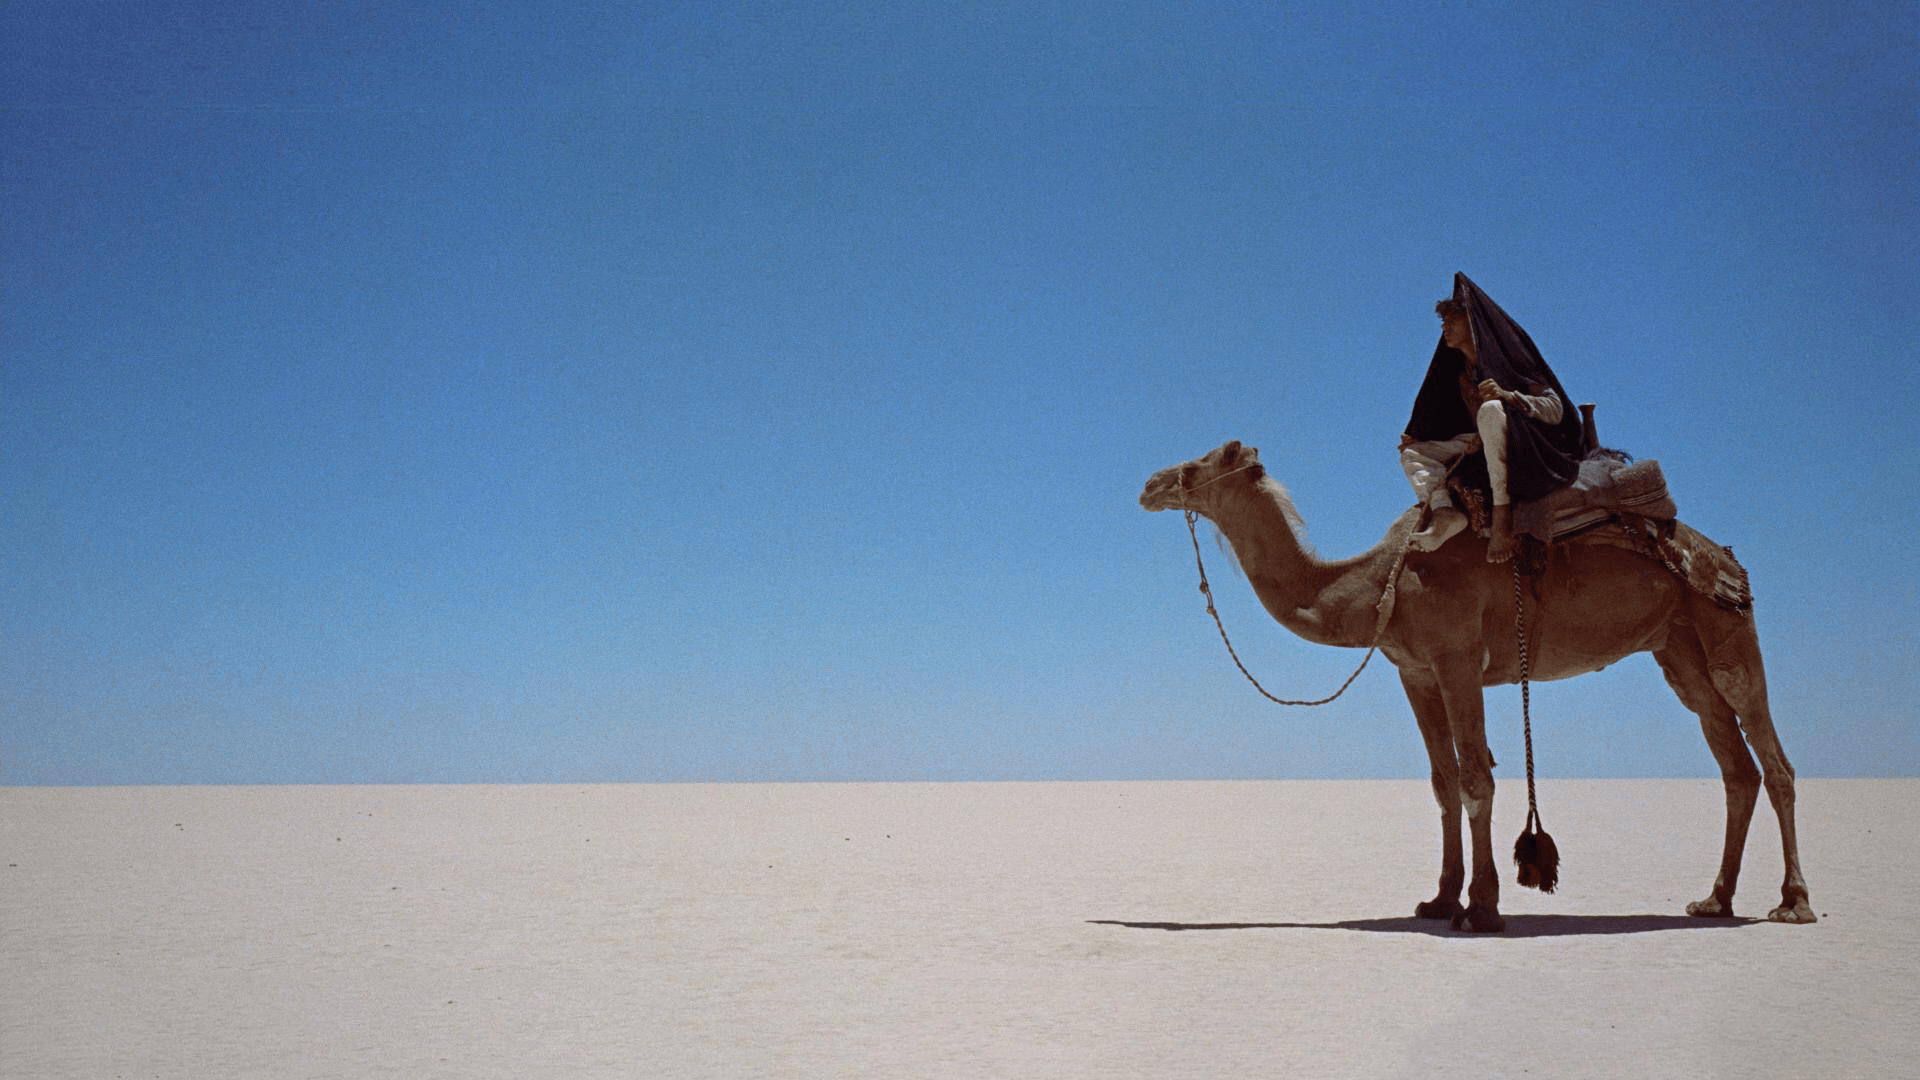 Lawrence of Arabia [1920x1080] : wallpapers